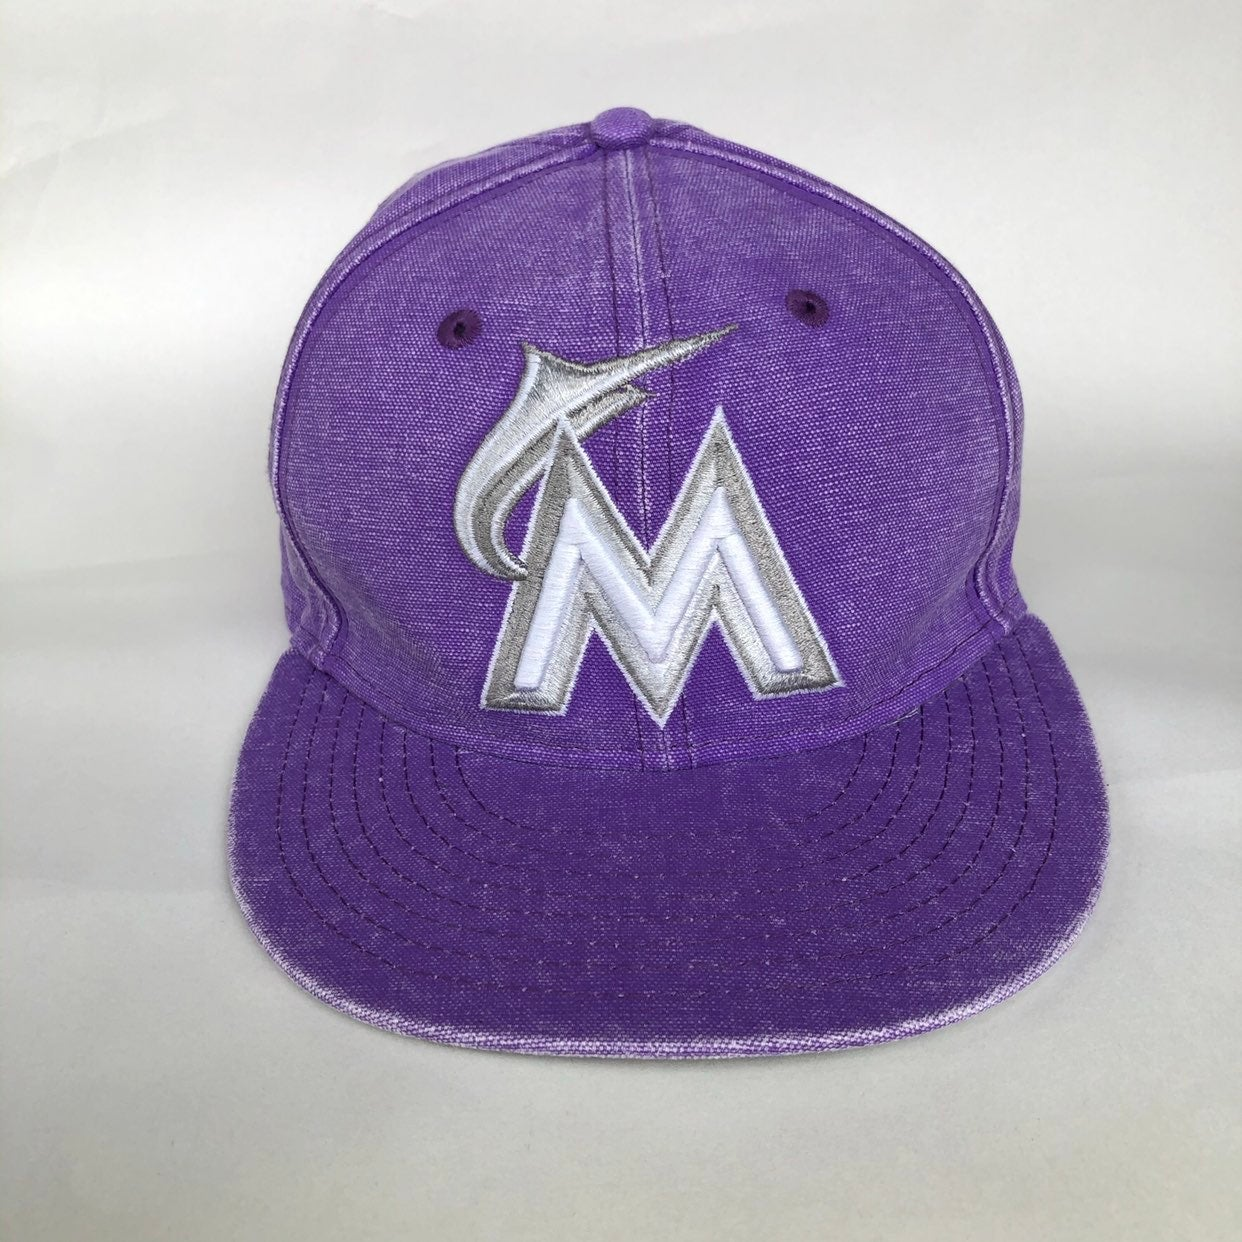 Marlins New Era hat ⚾️ great condition